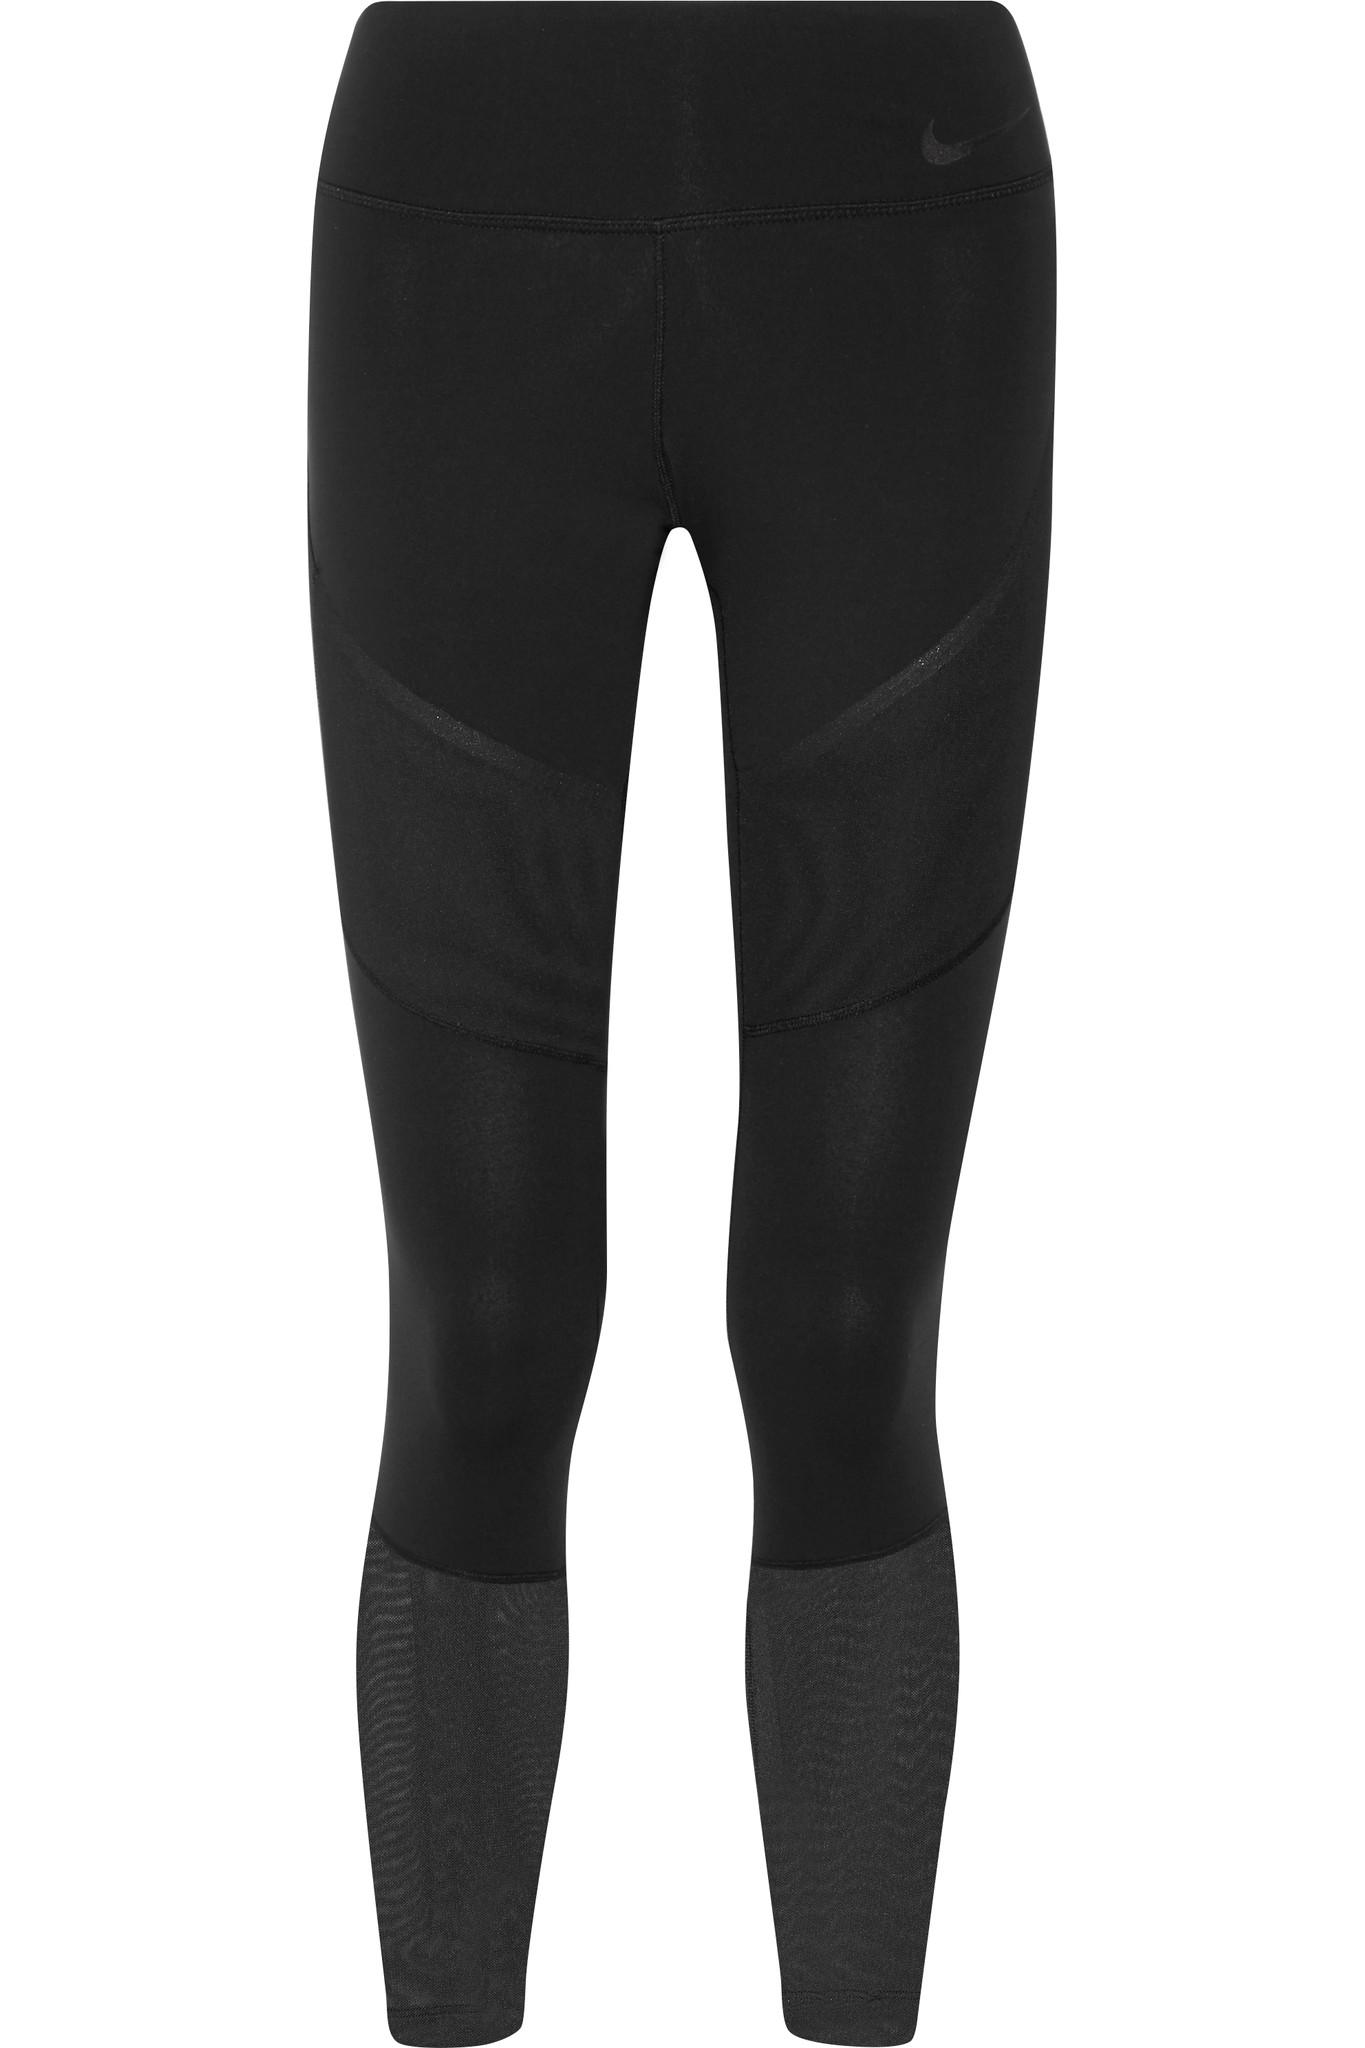 best supplier website for discount superior quality Power Legendary Mesh-paneled Dri-fit Stretch Leggings